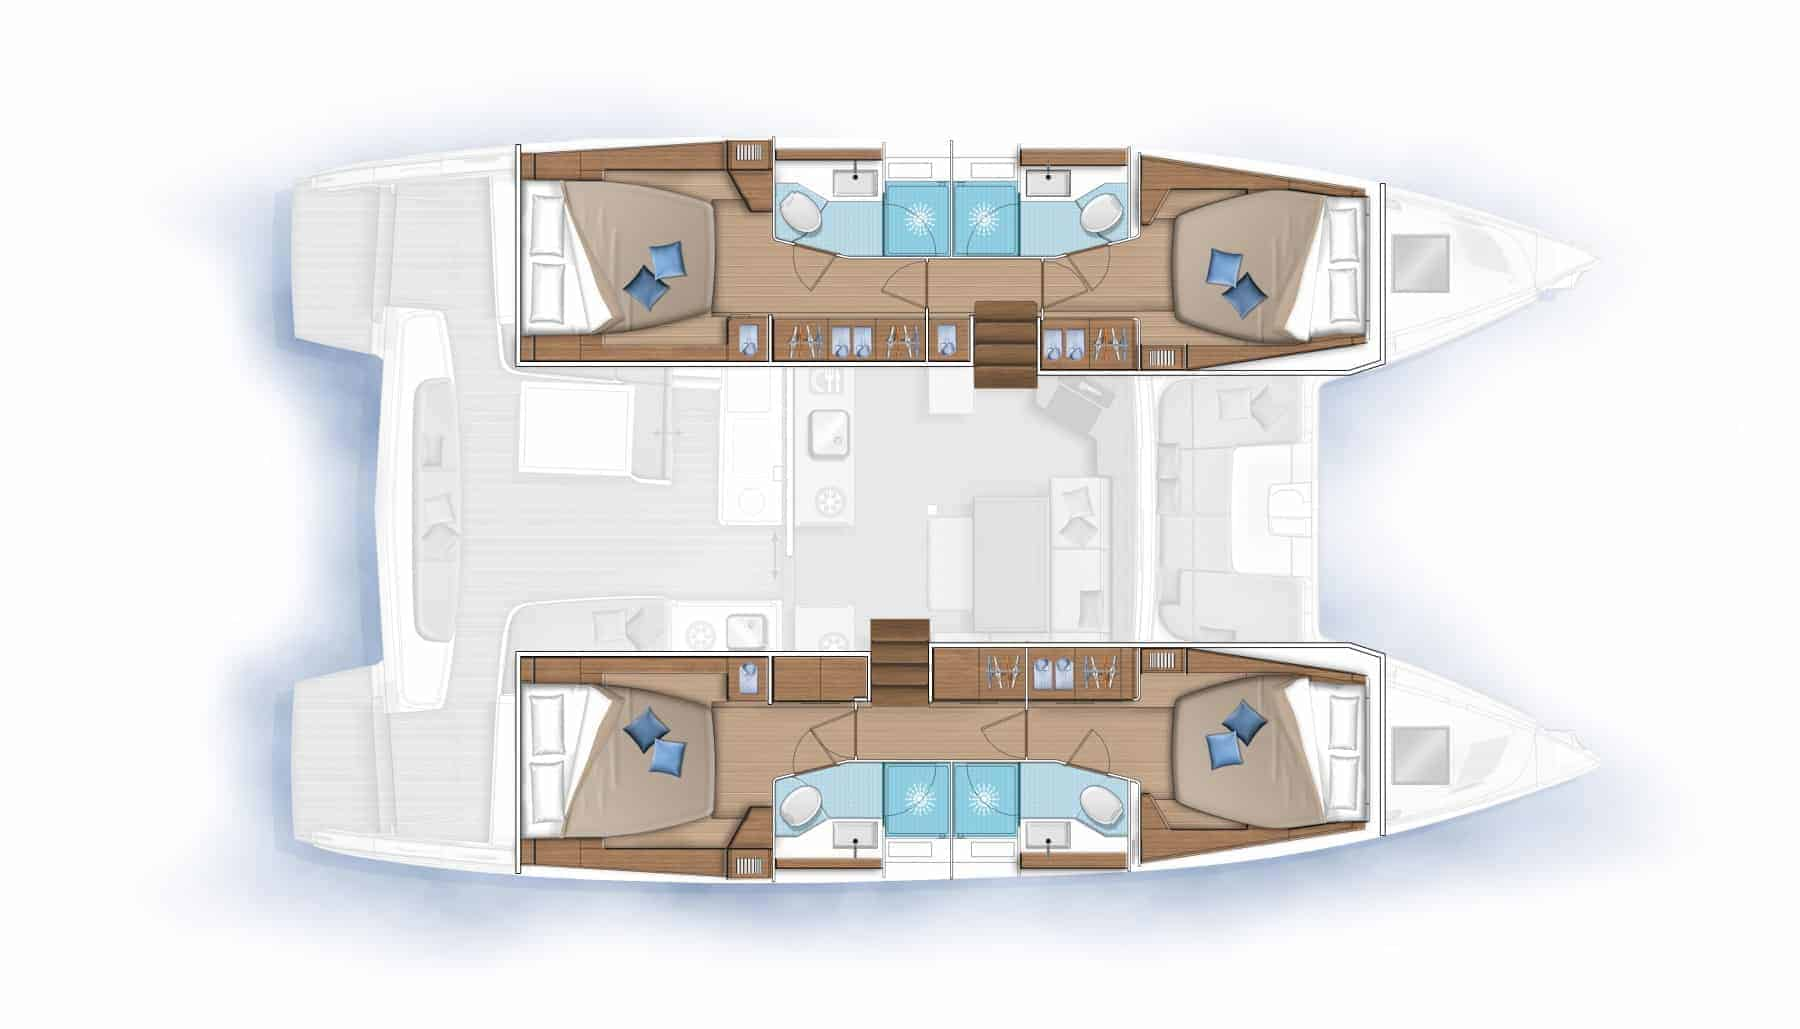 The interior cabin plan of a Lagoon 46 yacht